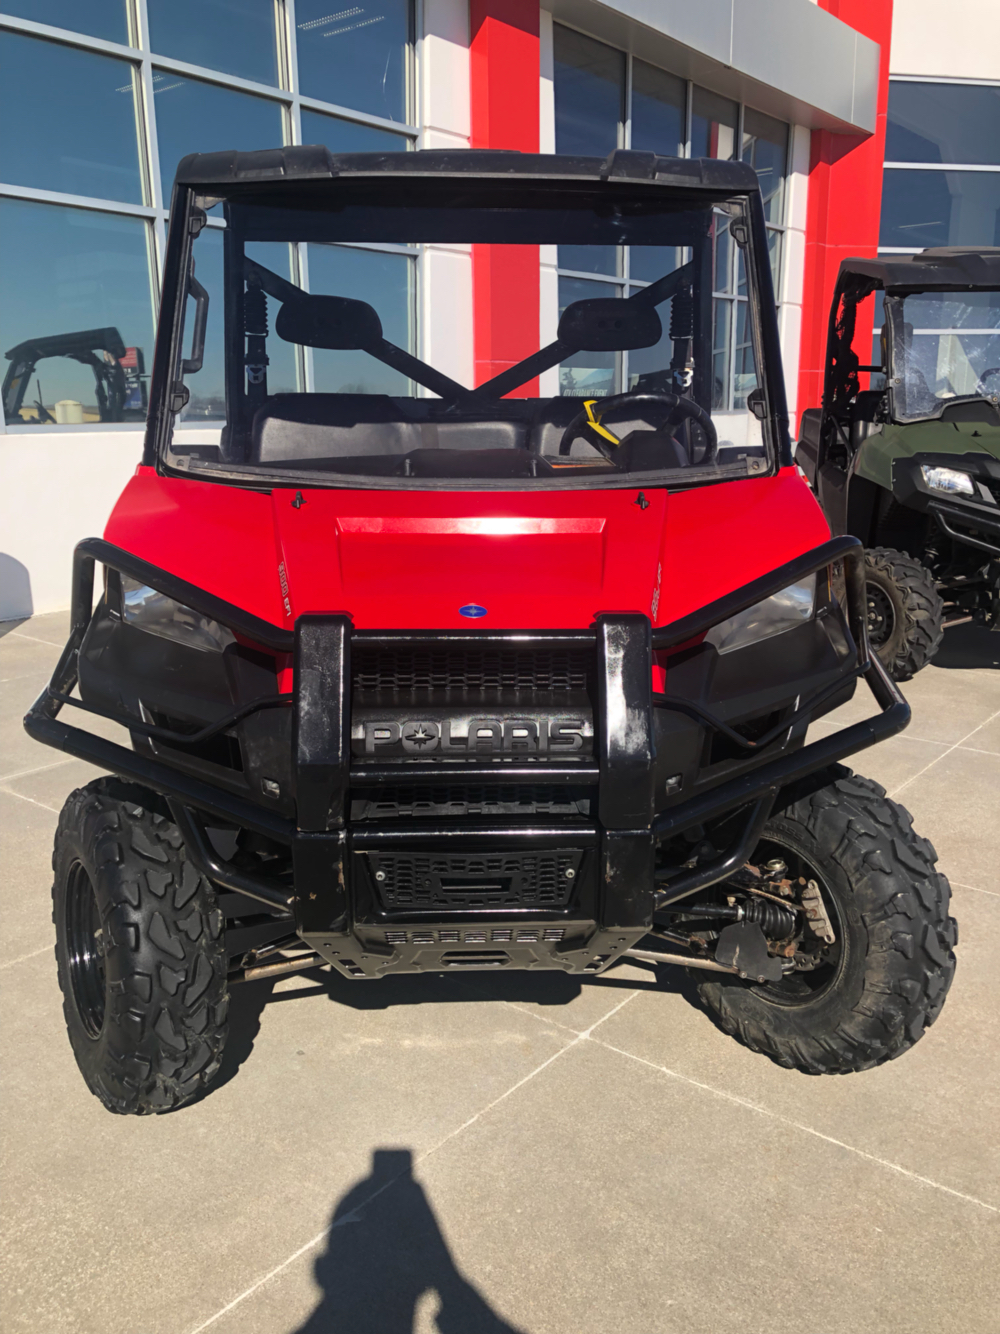 2013 Polaris Ranger XP® 900 in Roca, Nebraska - Photo 3